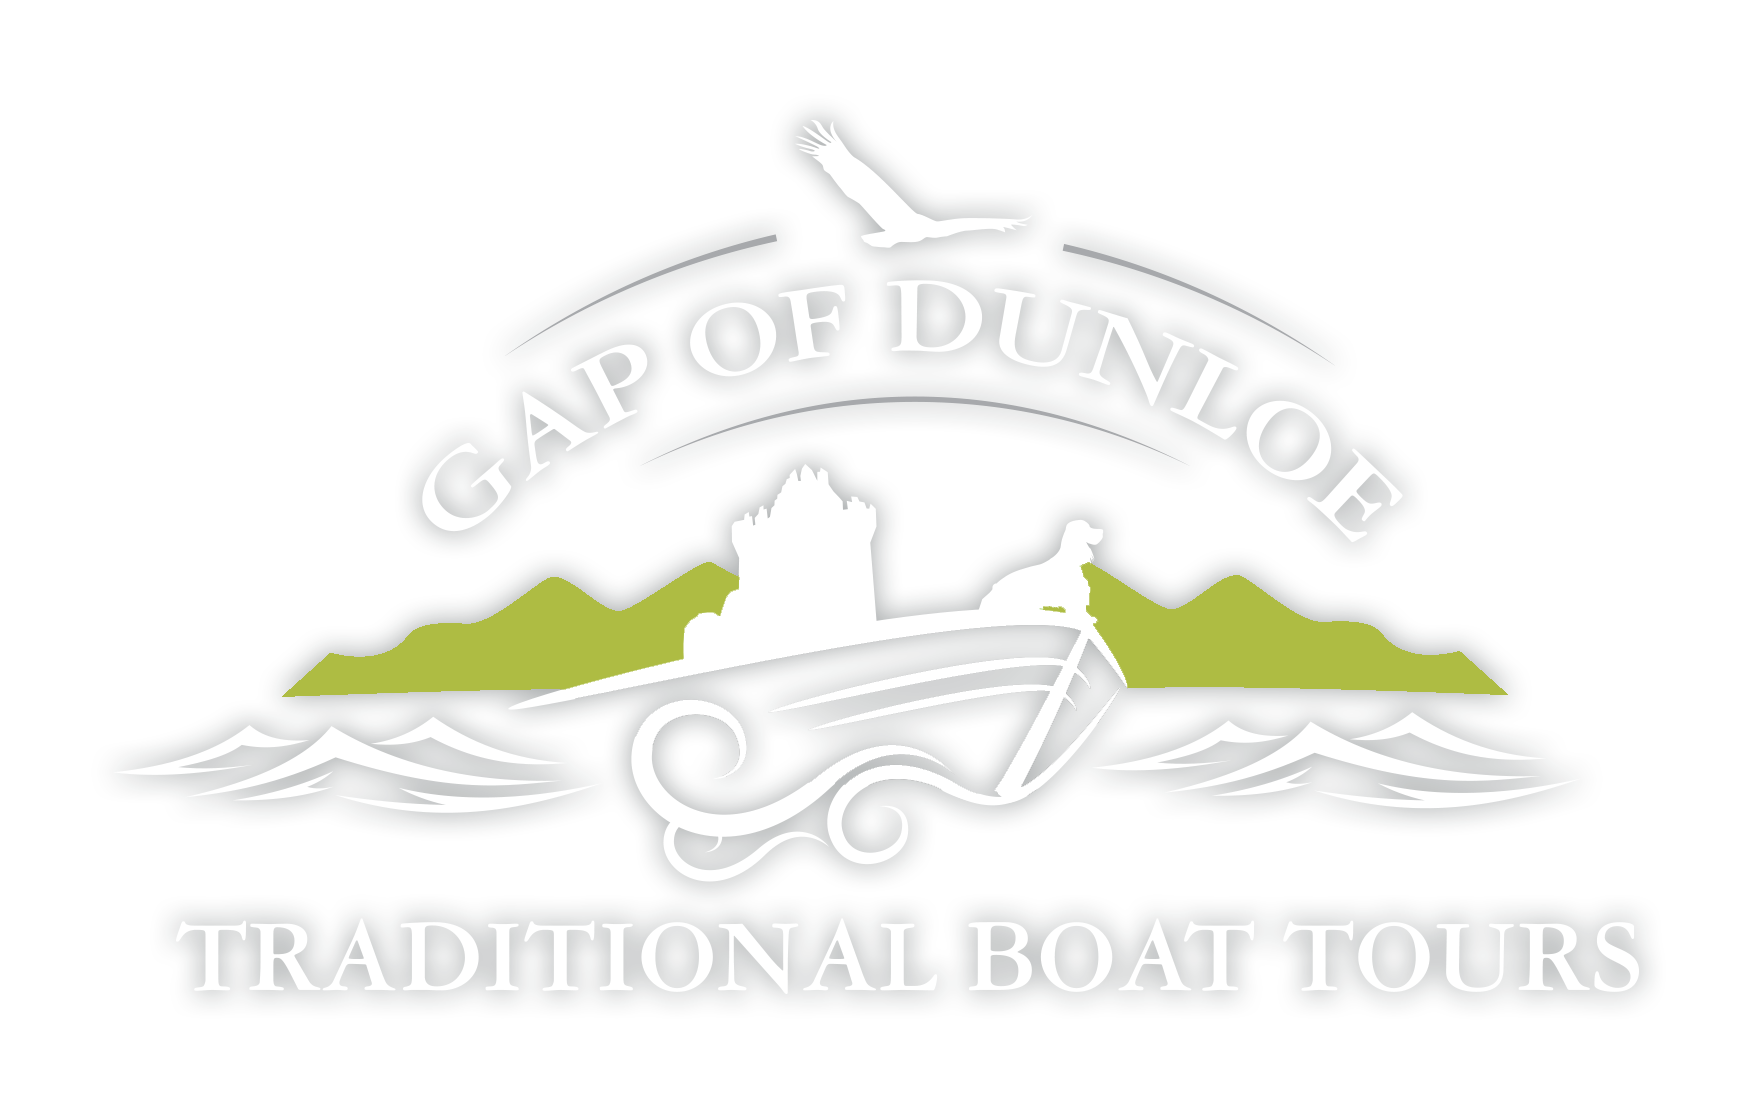 Gap of Dunloe Traditional Boat Tours, Killarney Logo